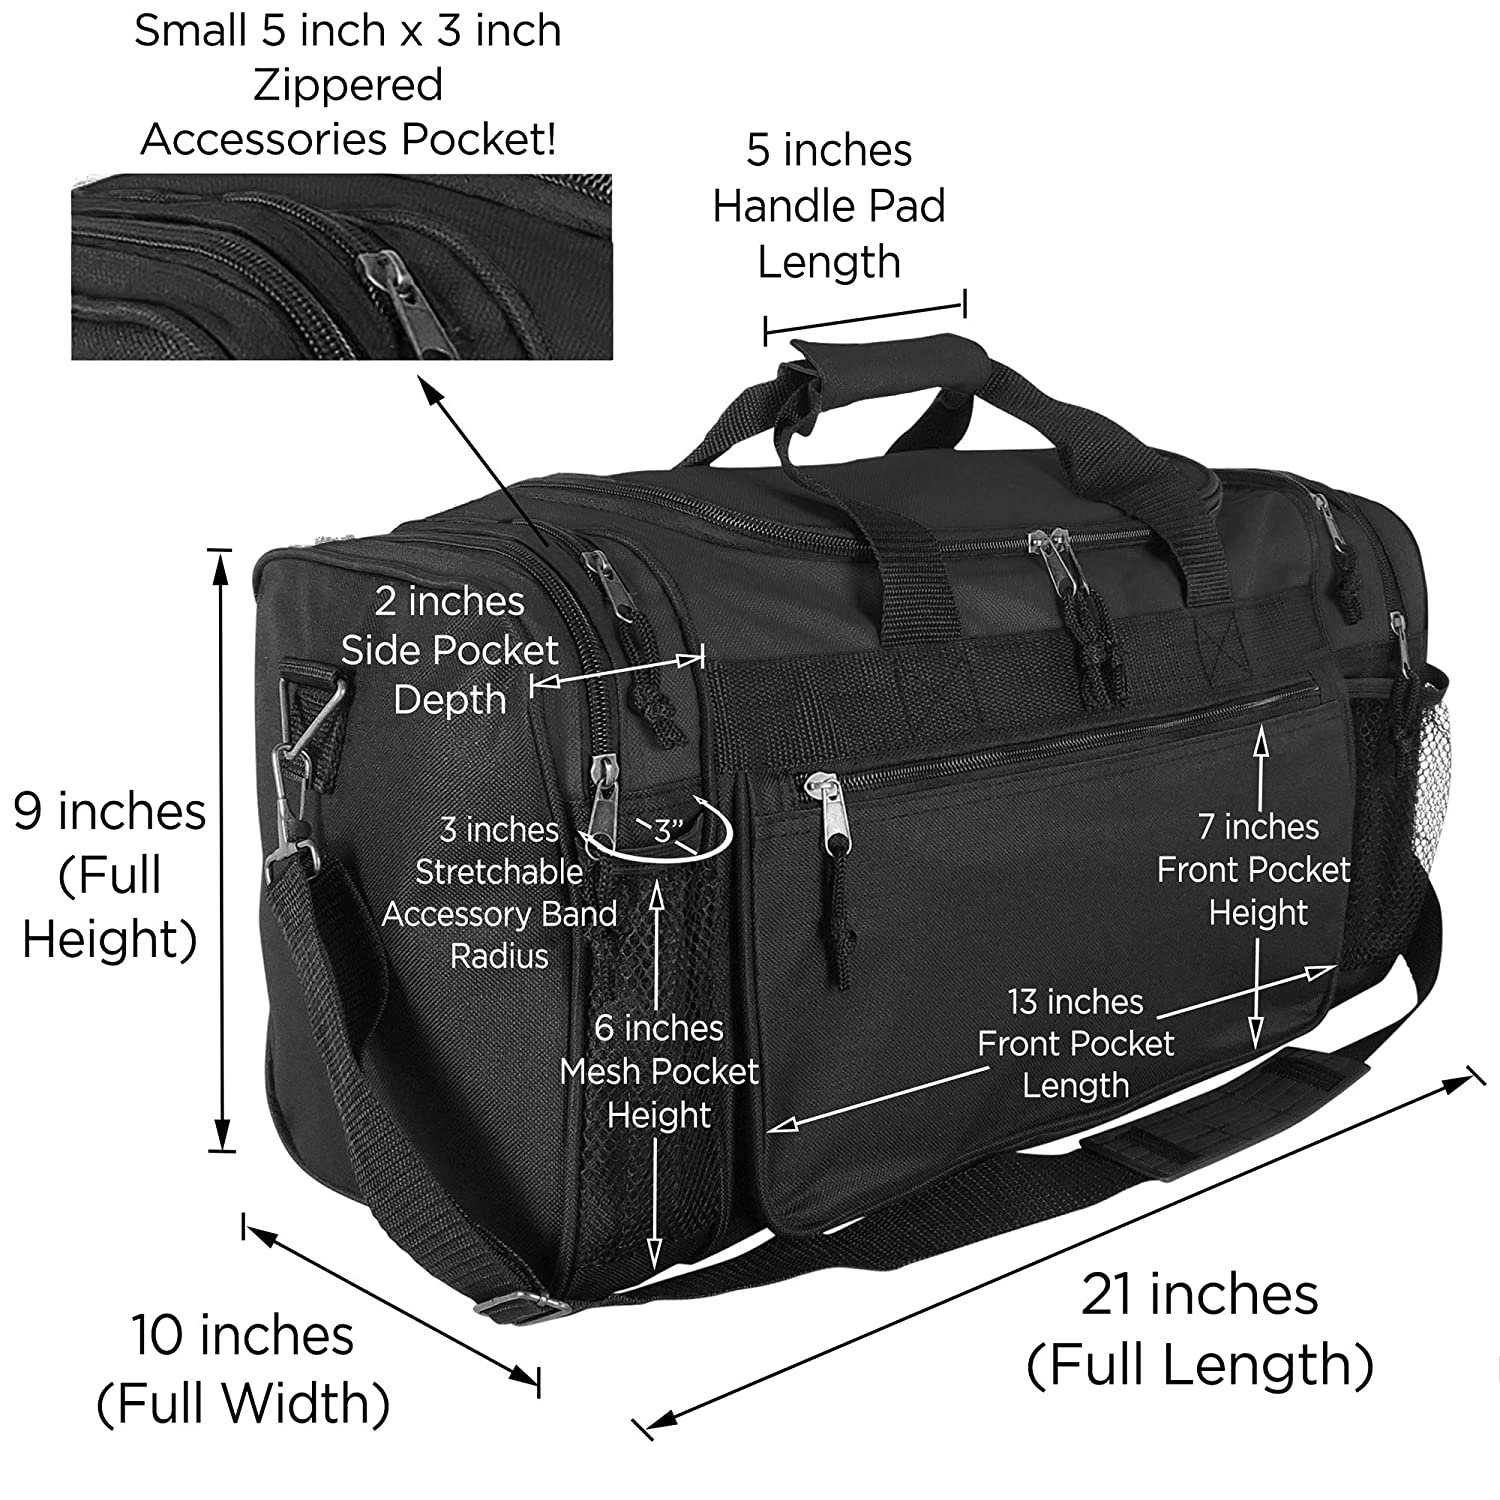 dac88024783c Amazon.com  Dalix 20 Inch Sports Duffle Bag with Mesh and Valuables  Pockets